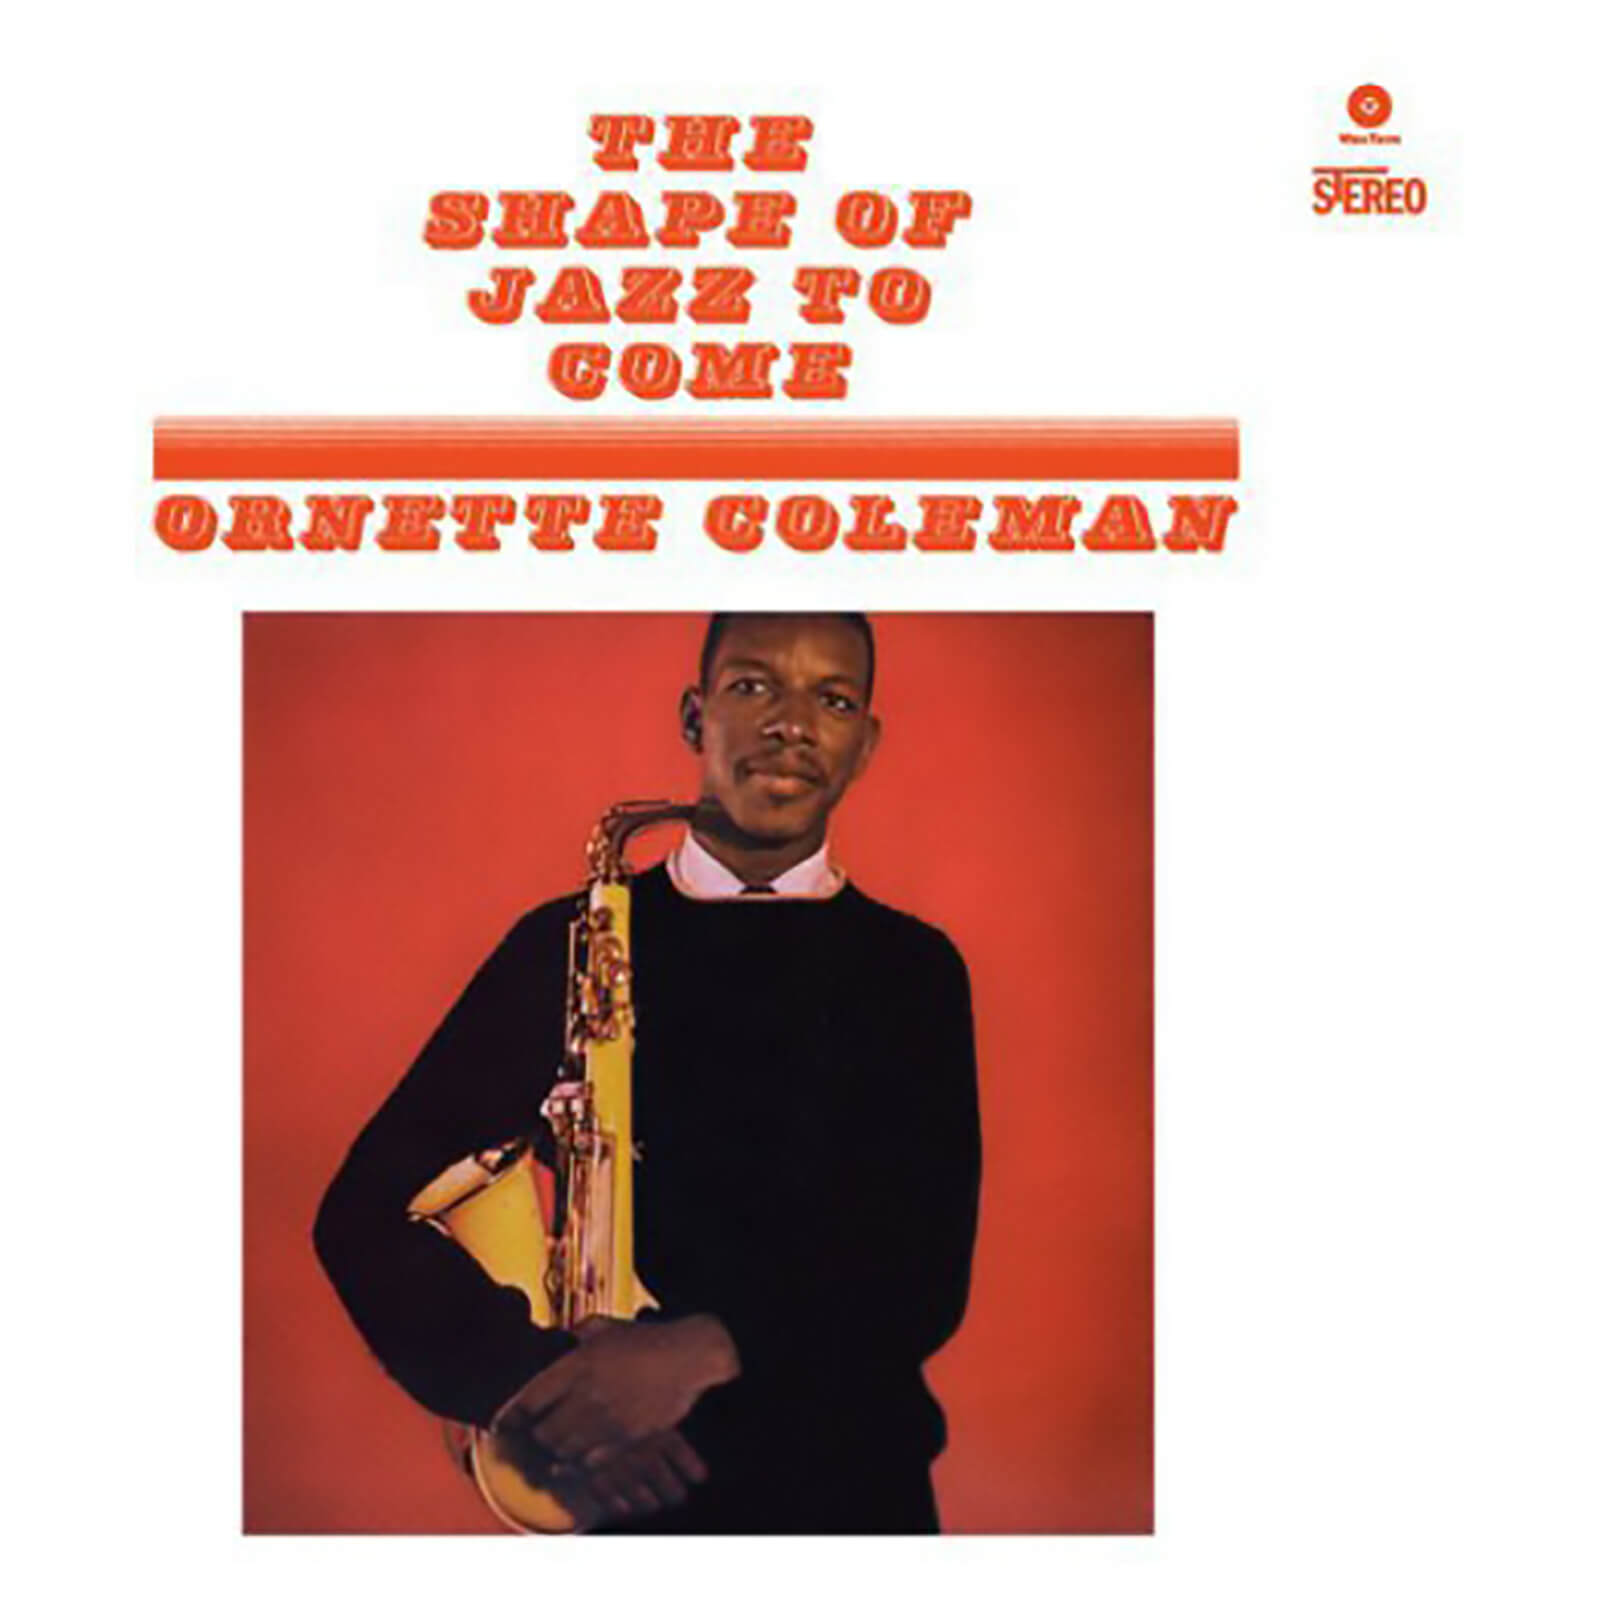 Ornette Coleman - Shape Of Jazz To Come - Vinyl